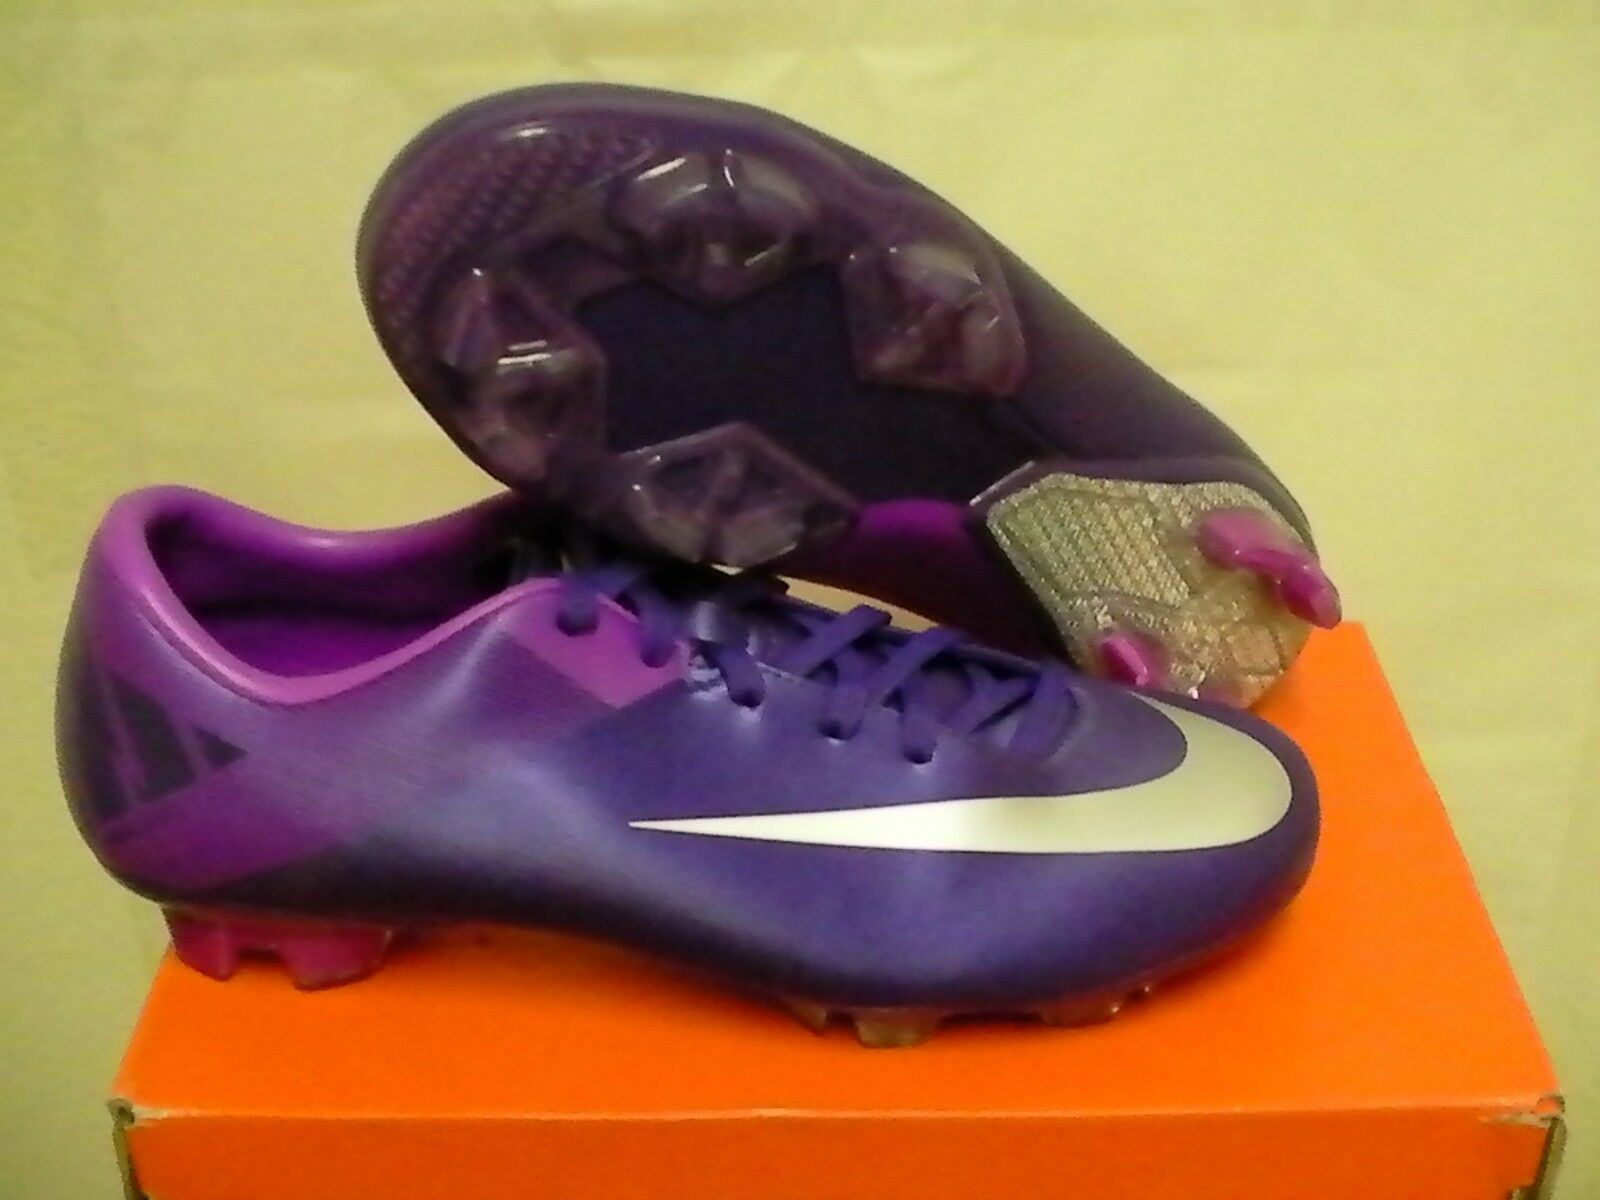 Nike mercurial miracle ii fg soccer shoes size 10.5 us purple